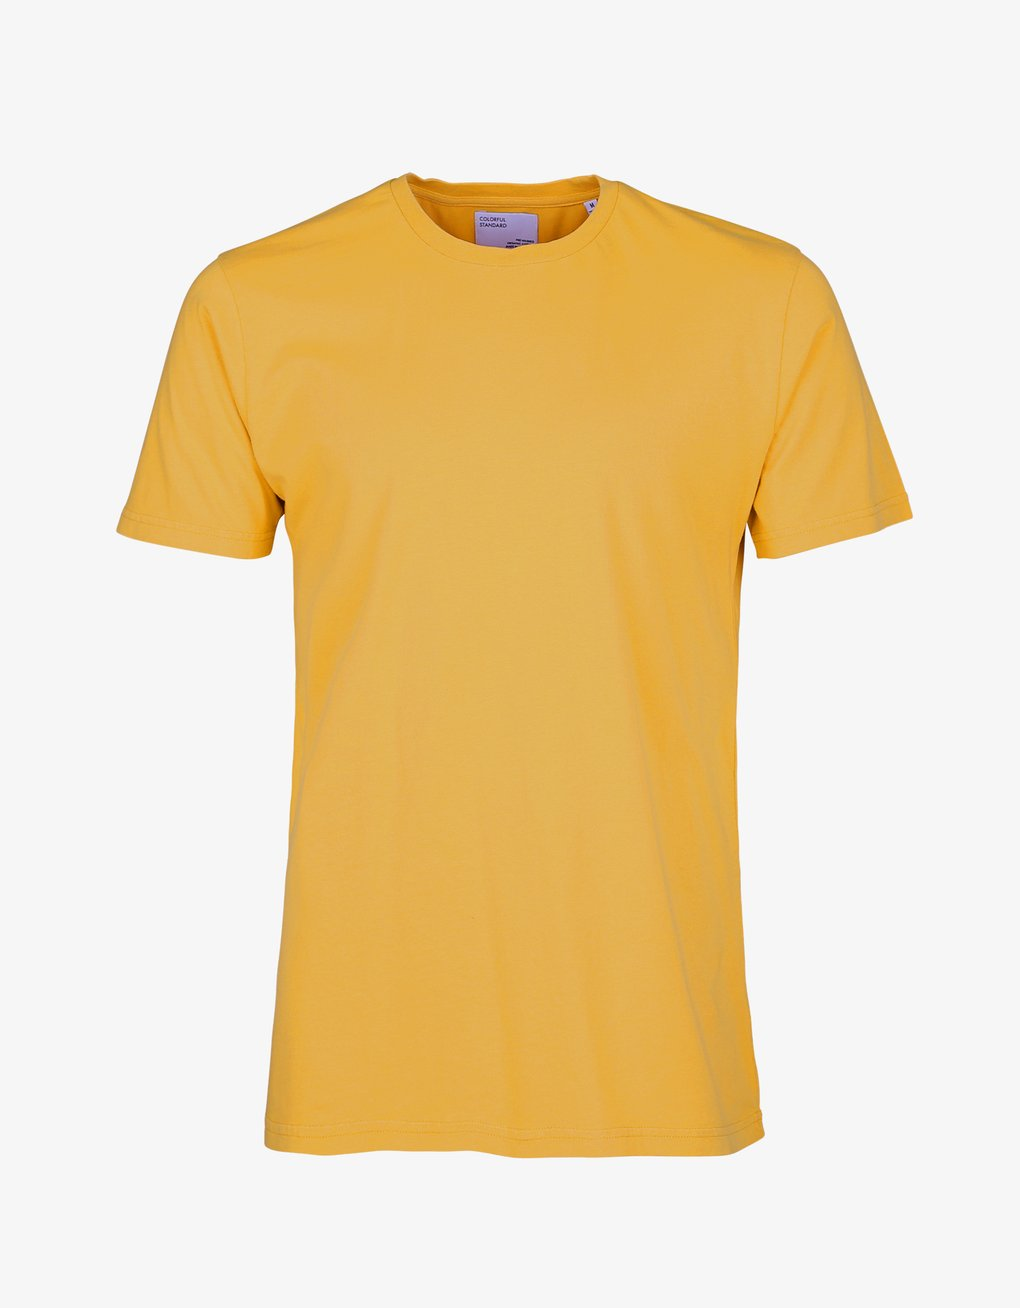 Colorful Standard T-Shirt - Burned Yellow